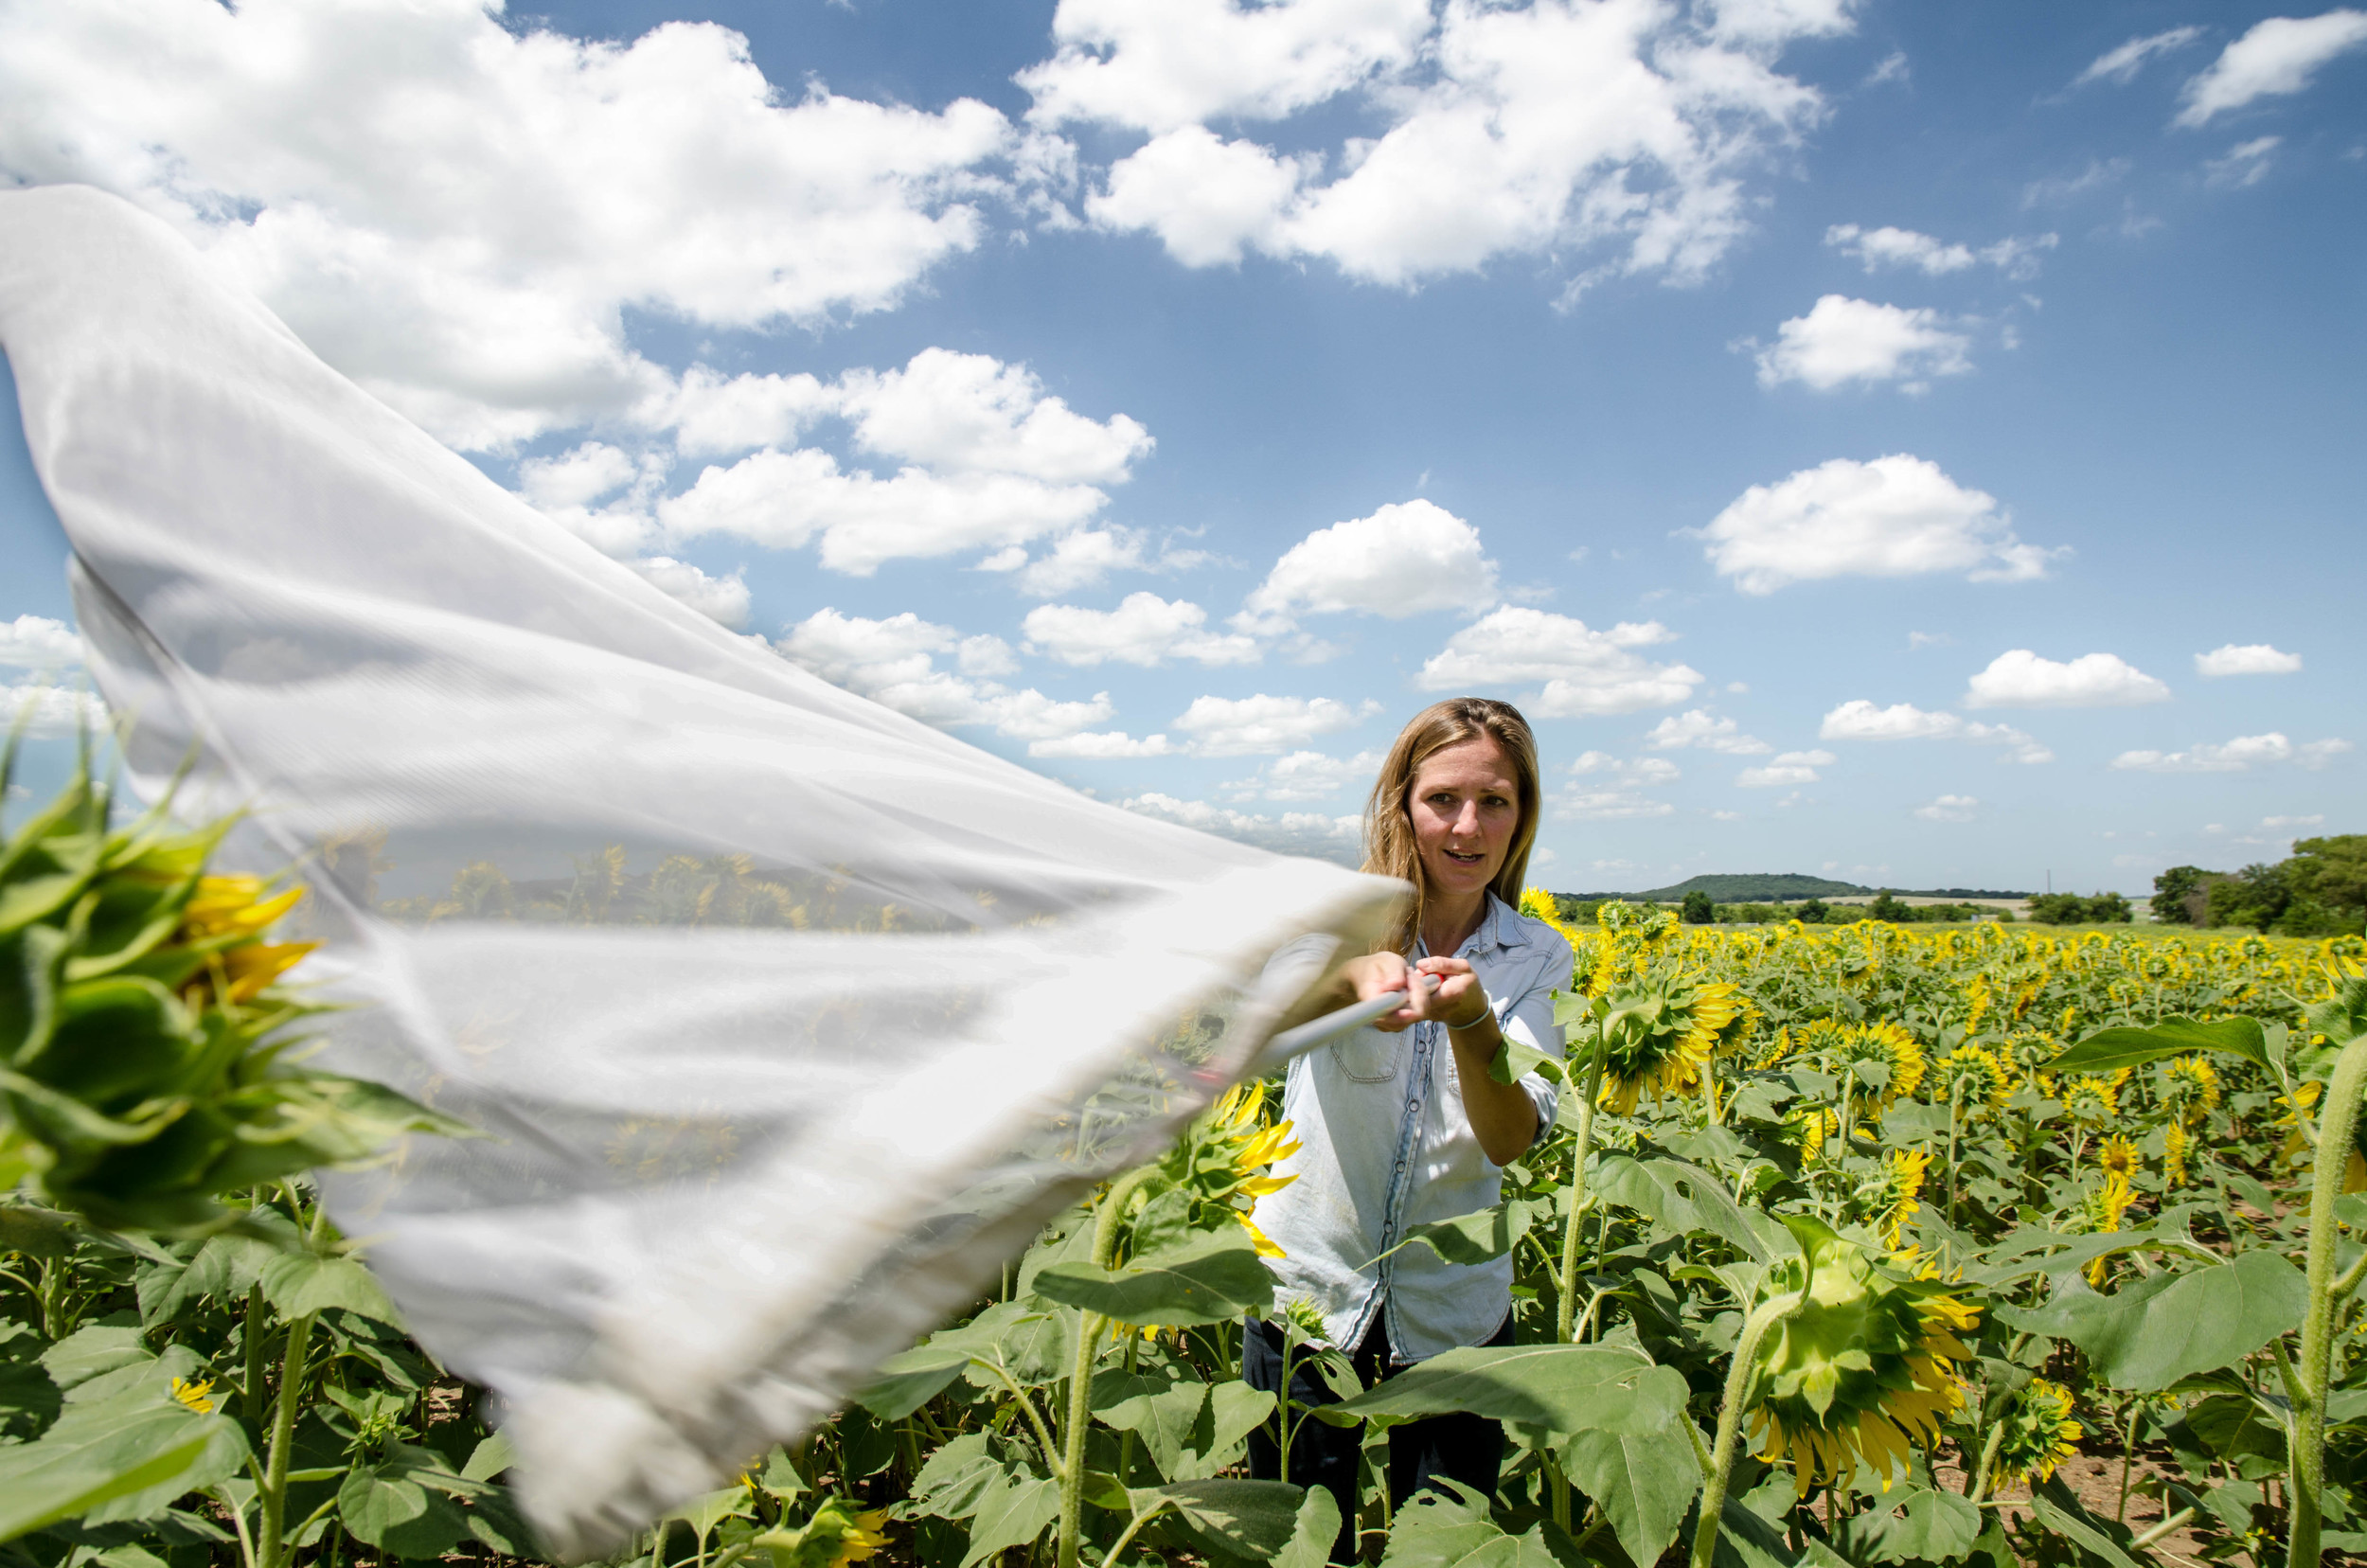 With a bee in her sights Jessica Beckham, an environmental science graduate student at UNT, hopes to continue her study of the bumblebee population by catching and analyzing them.